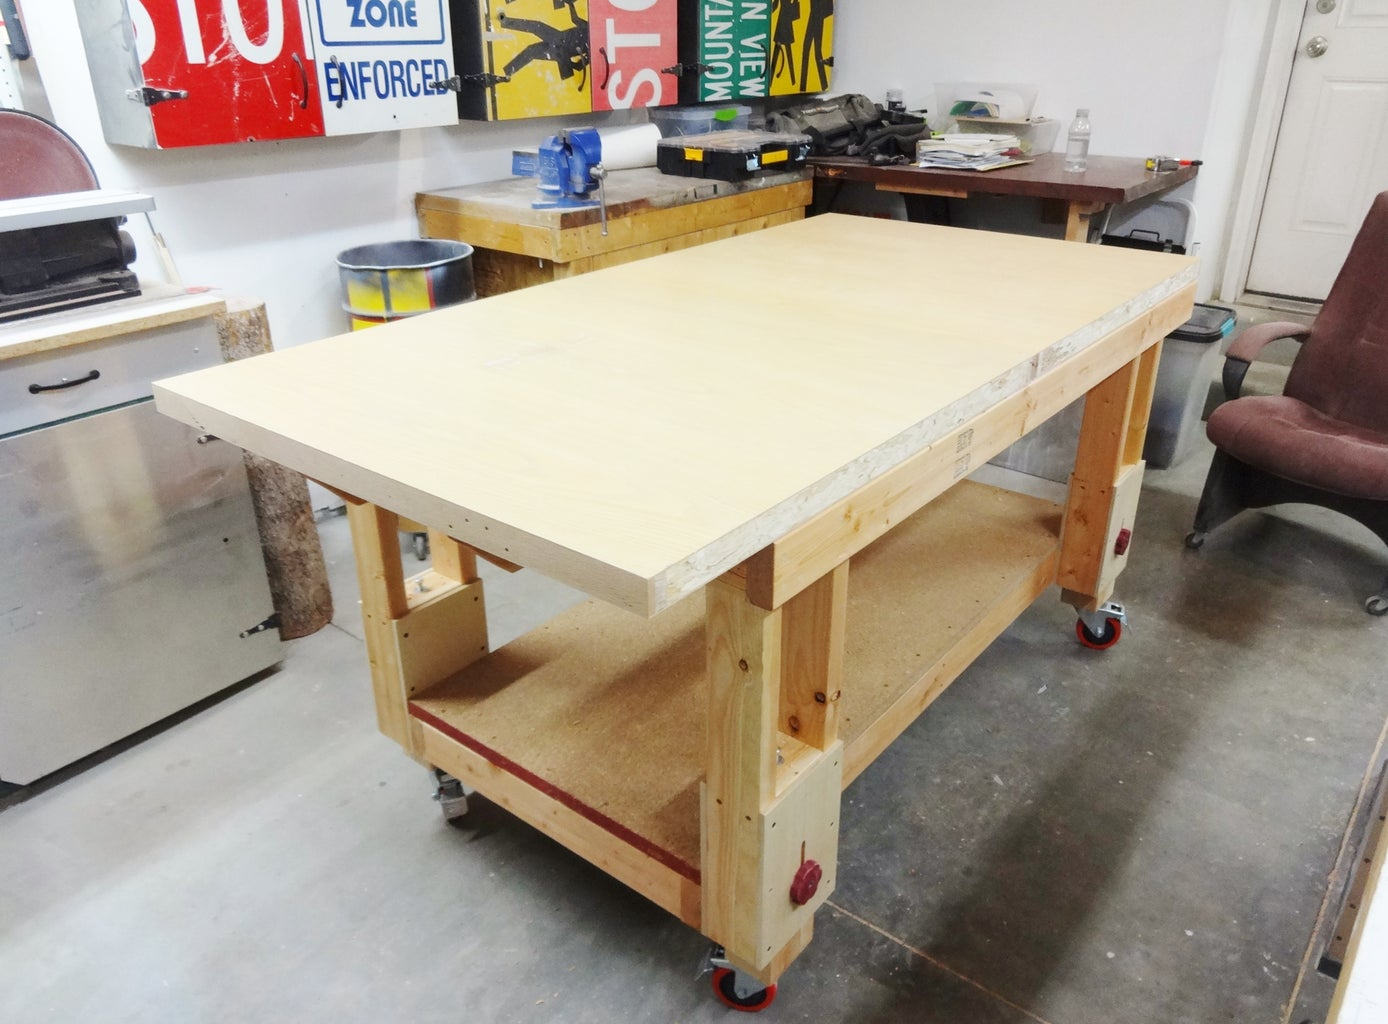 Add Top, Trim and Vise